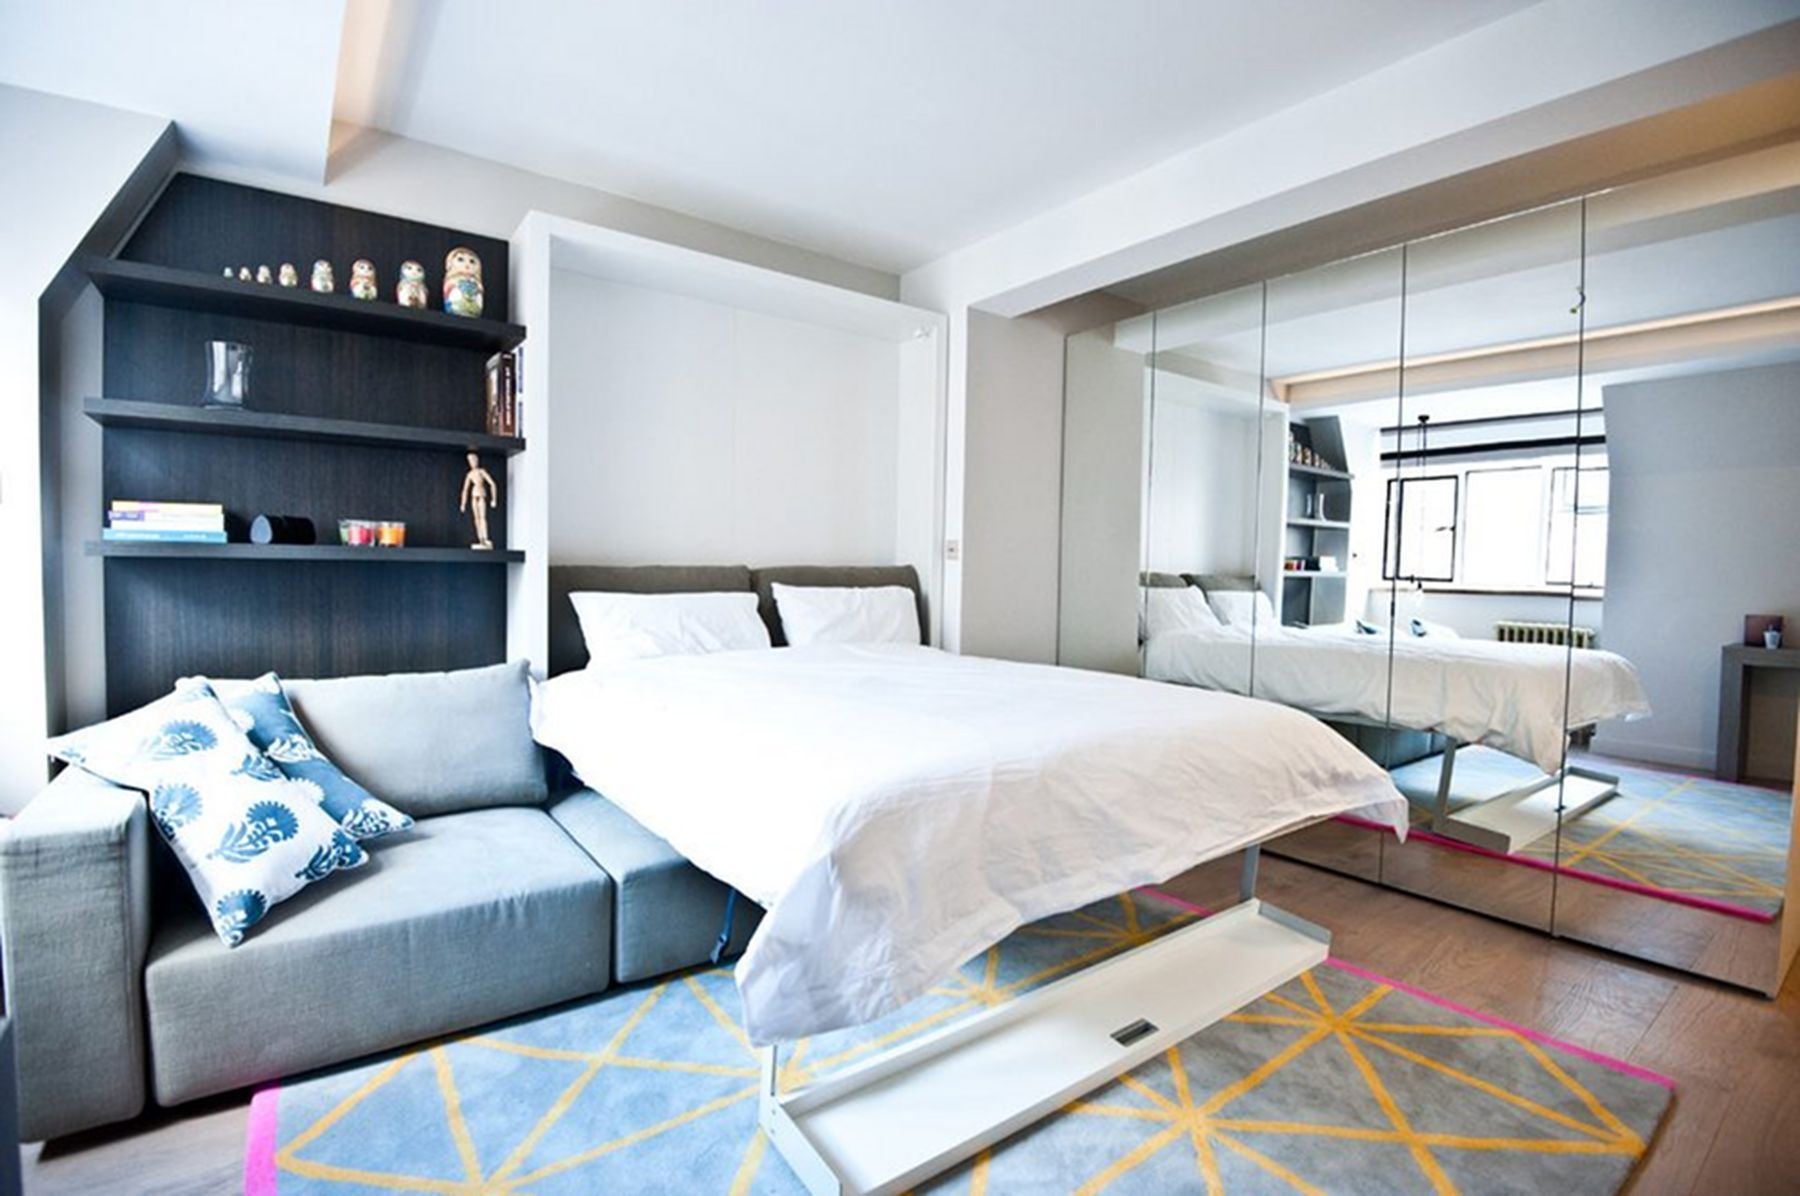 10 Creative Design Ideas In Small Bedrooms To Create A Comfortable